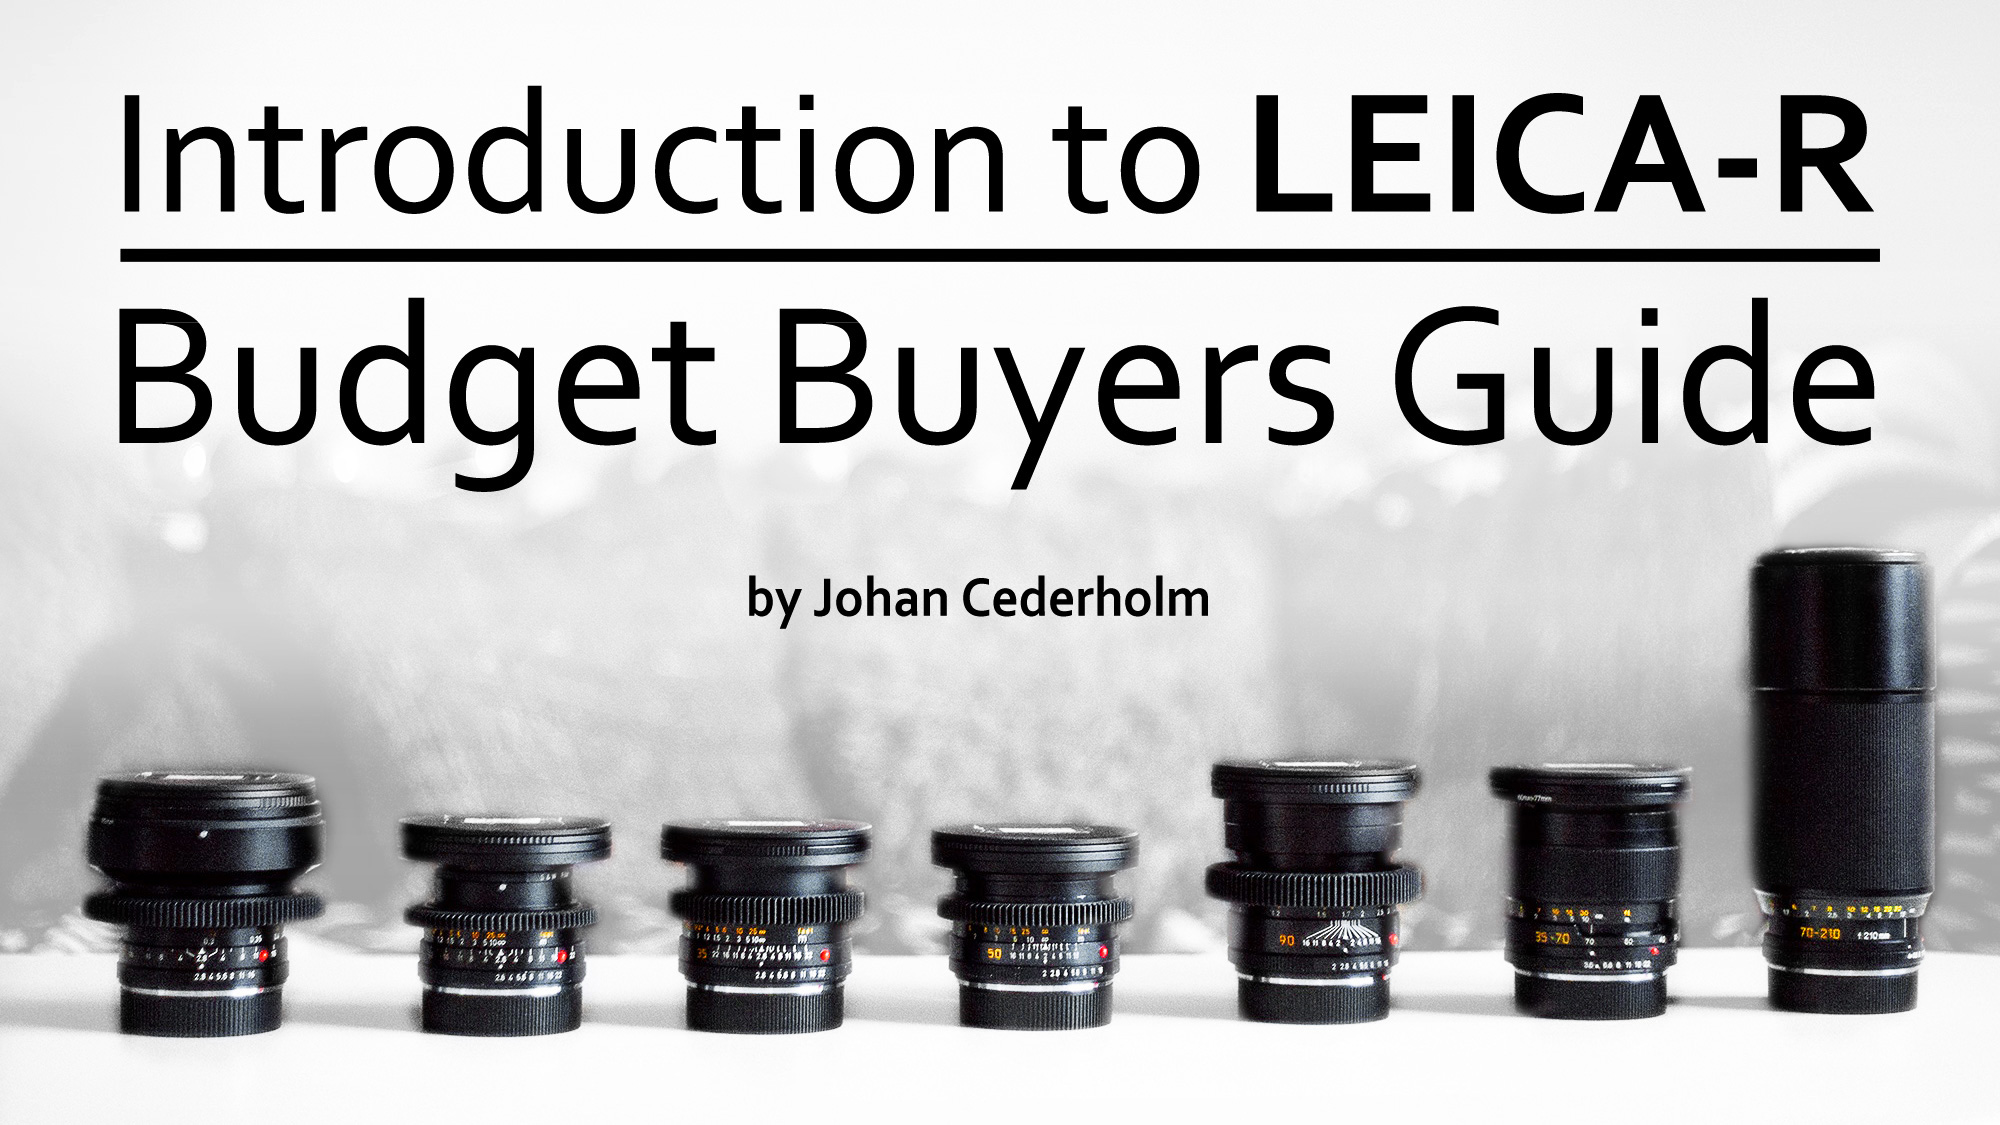 Introduction to LEICA-R lenses | Budget Buyer's Guide